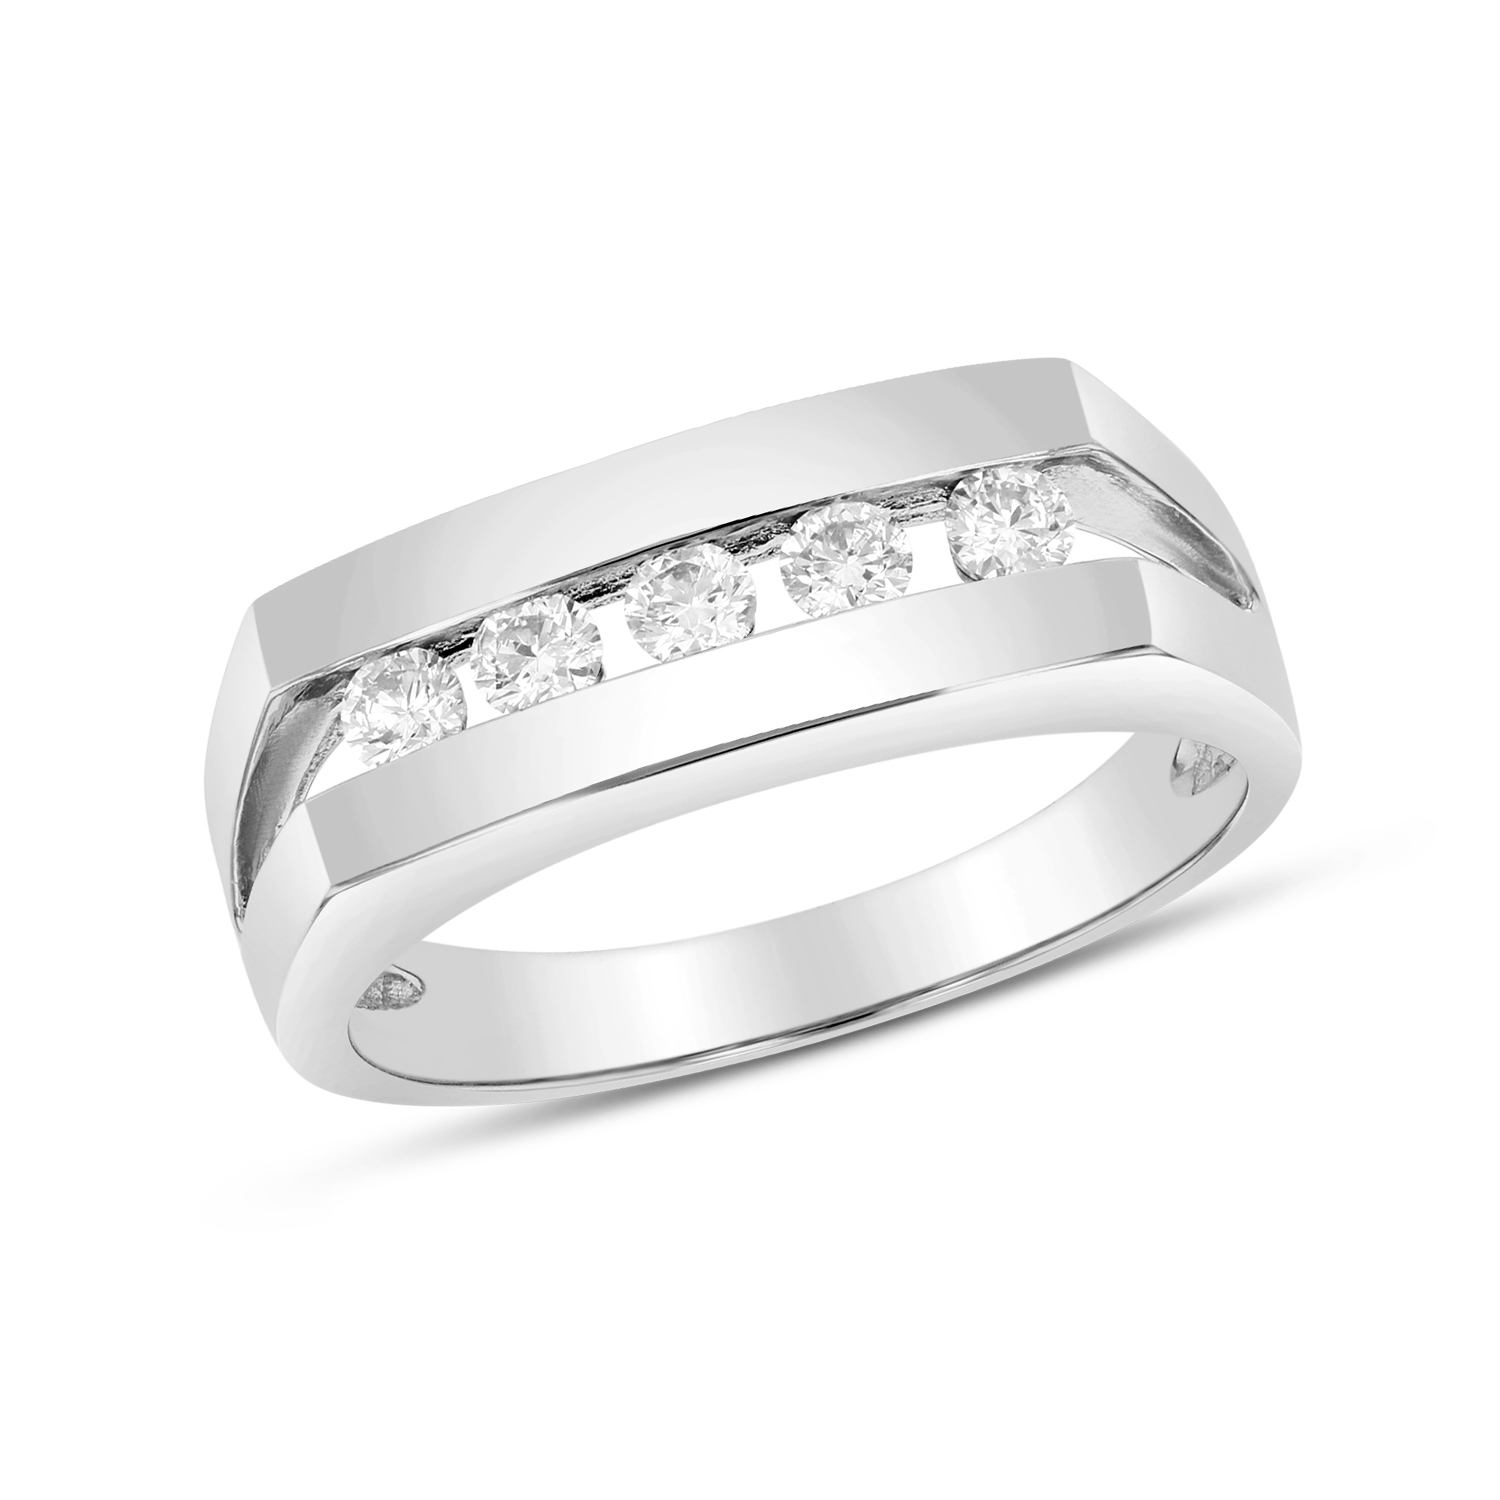 View 0.40ctw Diamond Men's Band in 14k White Gold